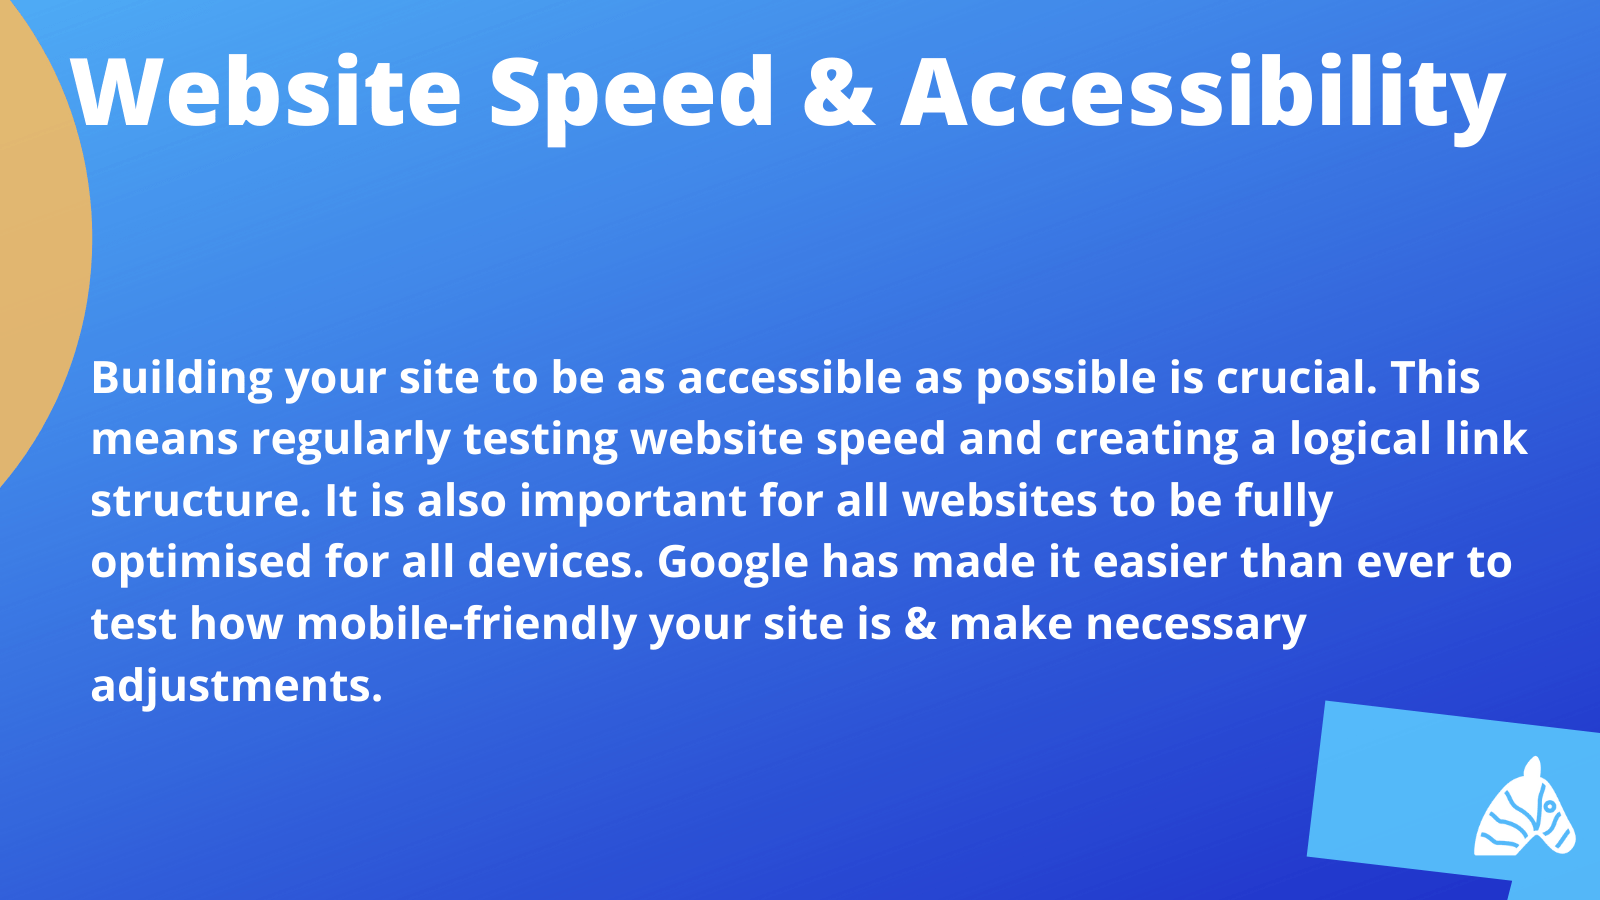 website speed and accessibility tips from Google's search for beginners video